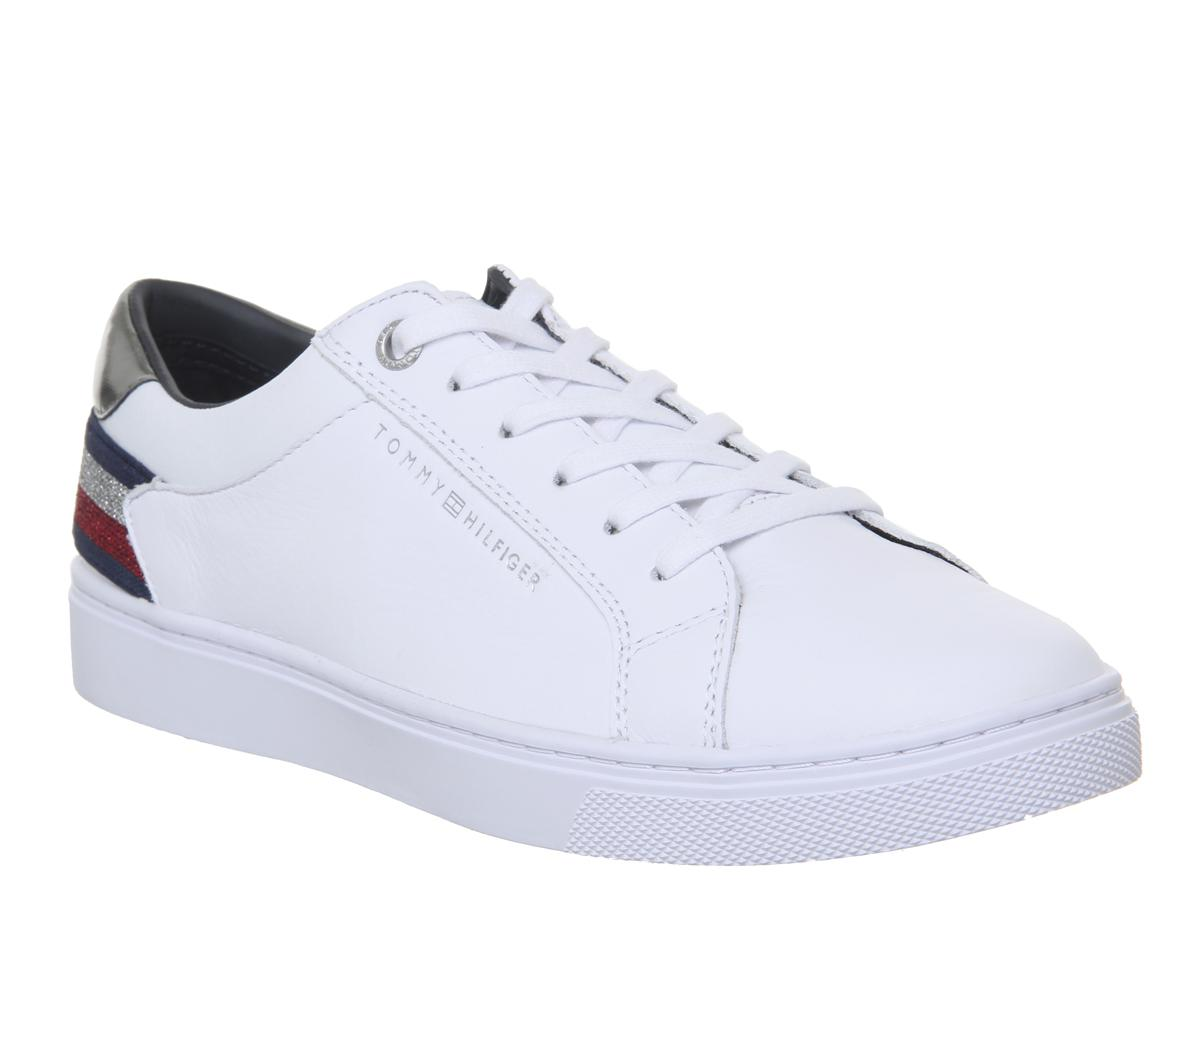 2279ce8bdb1c85 Tommy Hilfiger - White Essential Sneakers for Men - Lyst. View fullscreen